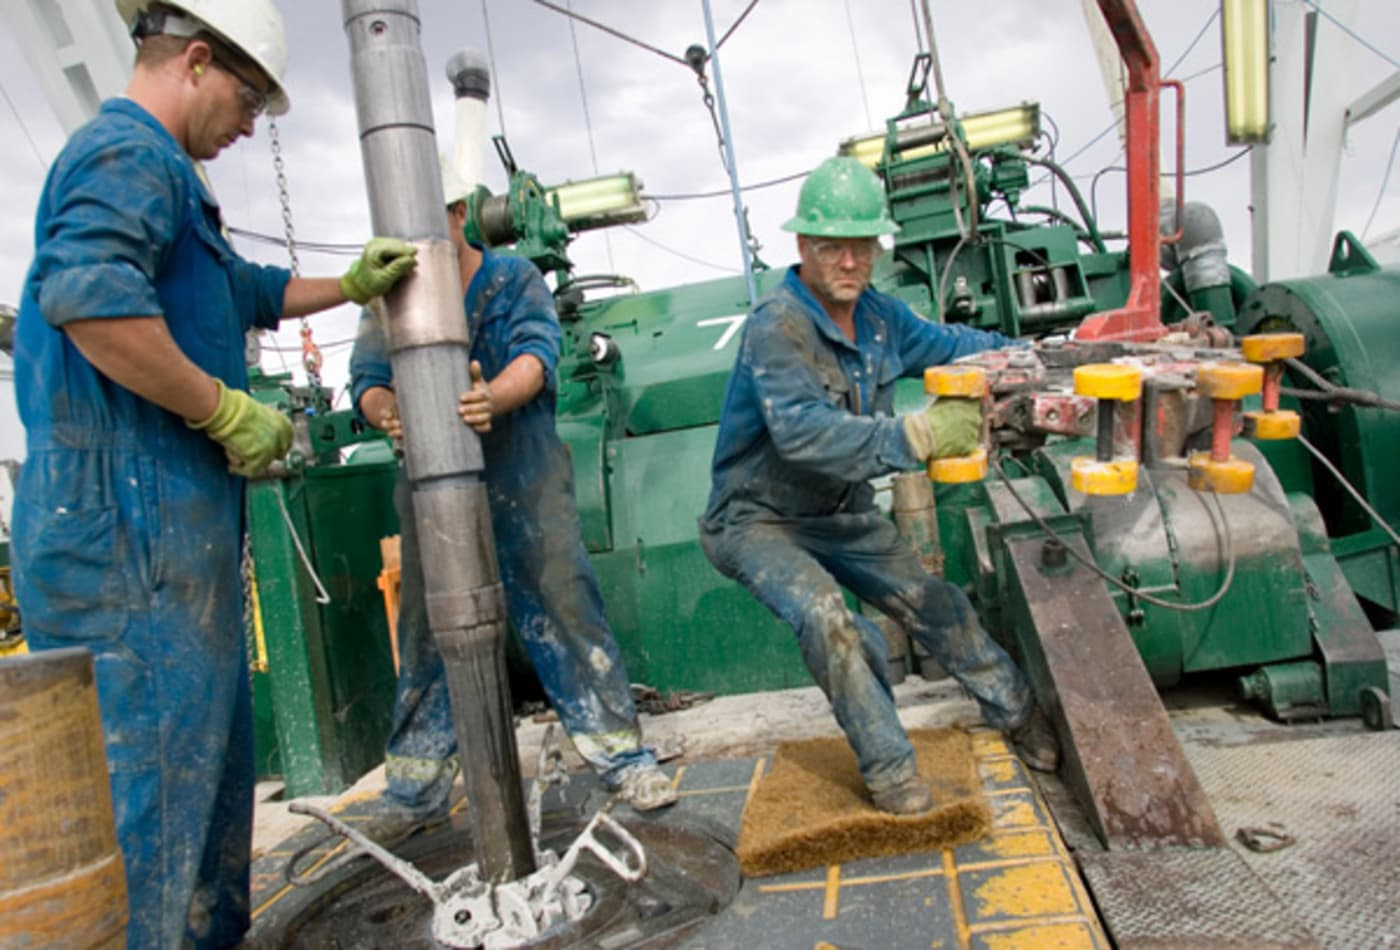 worst-jobs-2012-oil-rig-worker.jpg